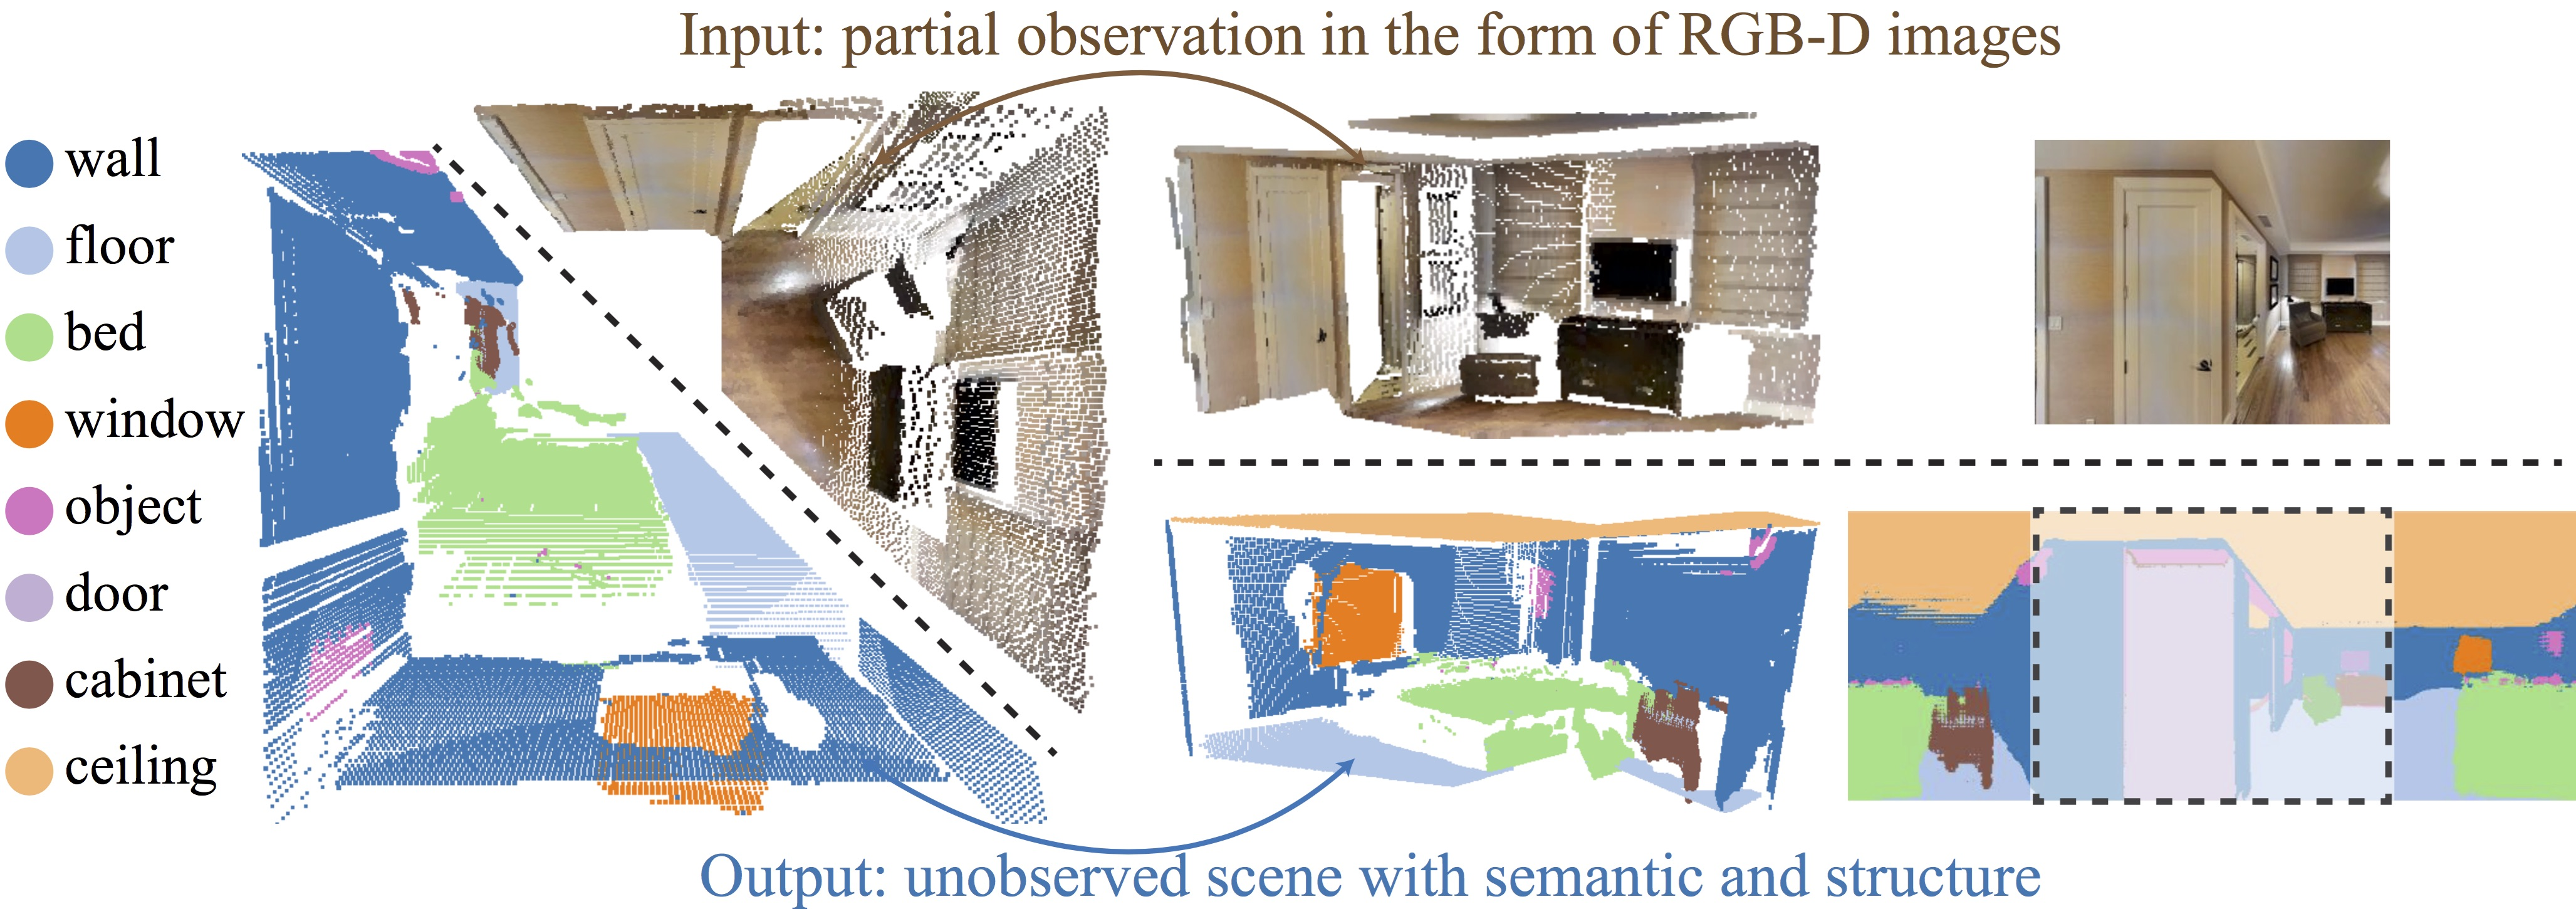 Im2Pano3D: Extrapolating 360 Structure and Semantics Beyond the Field of View